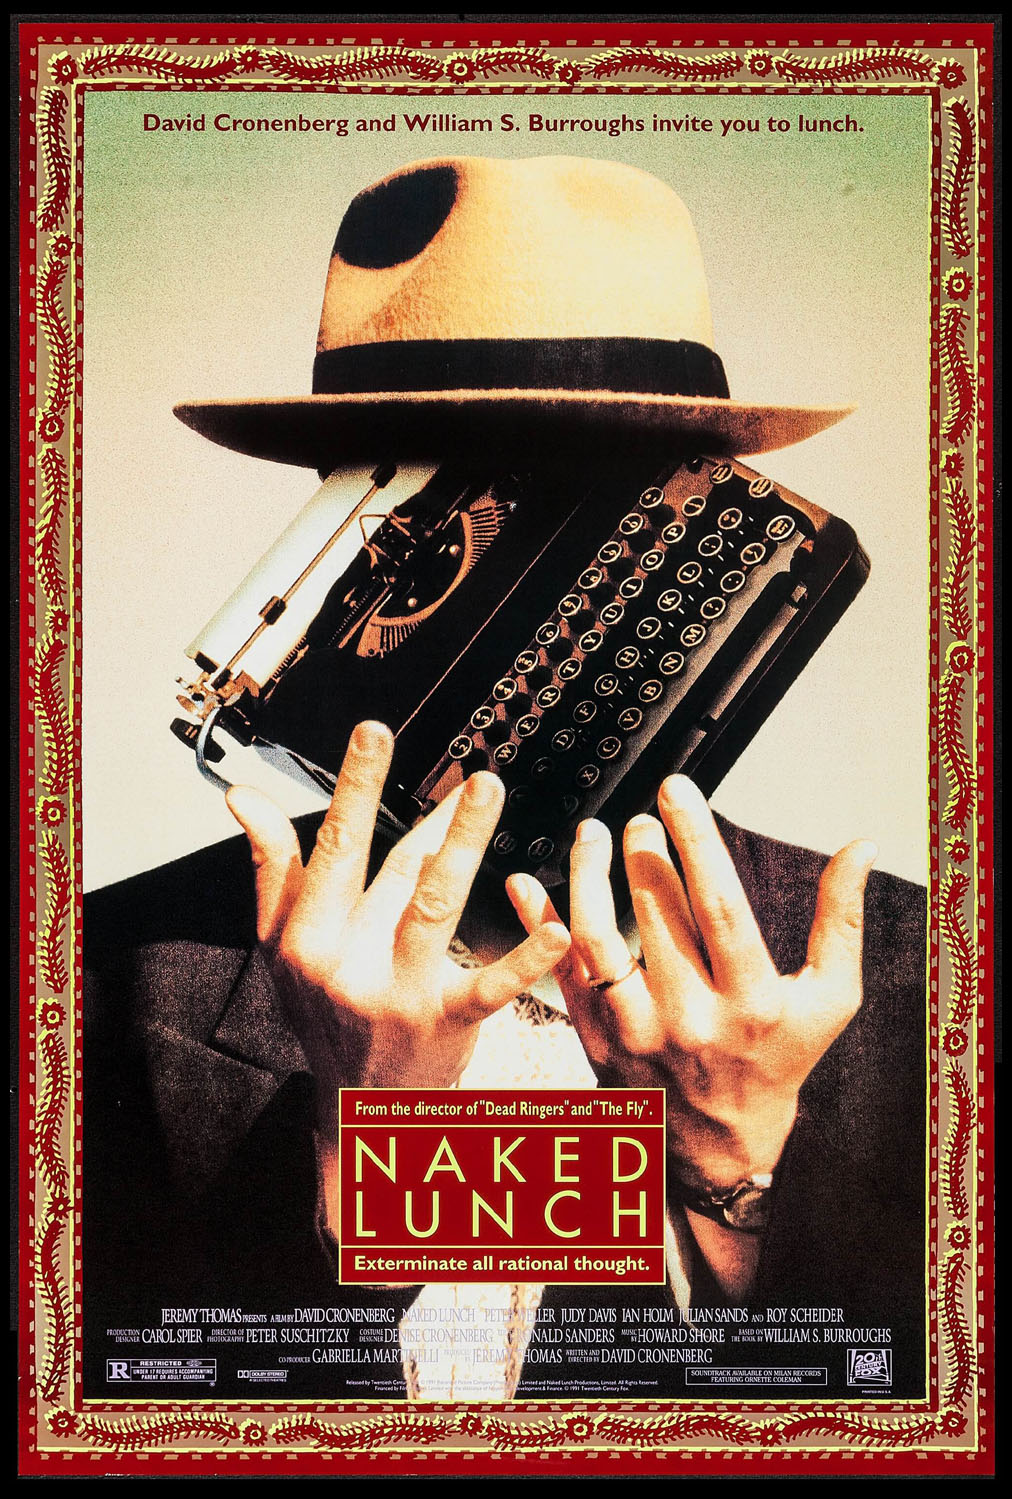 NAKED LUNCH @ FilmPosters.com